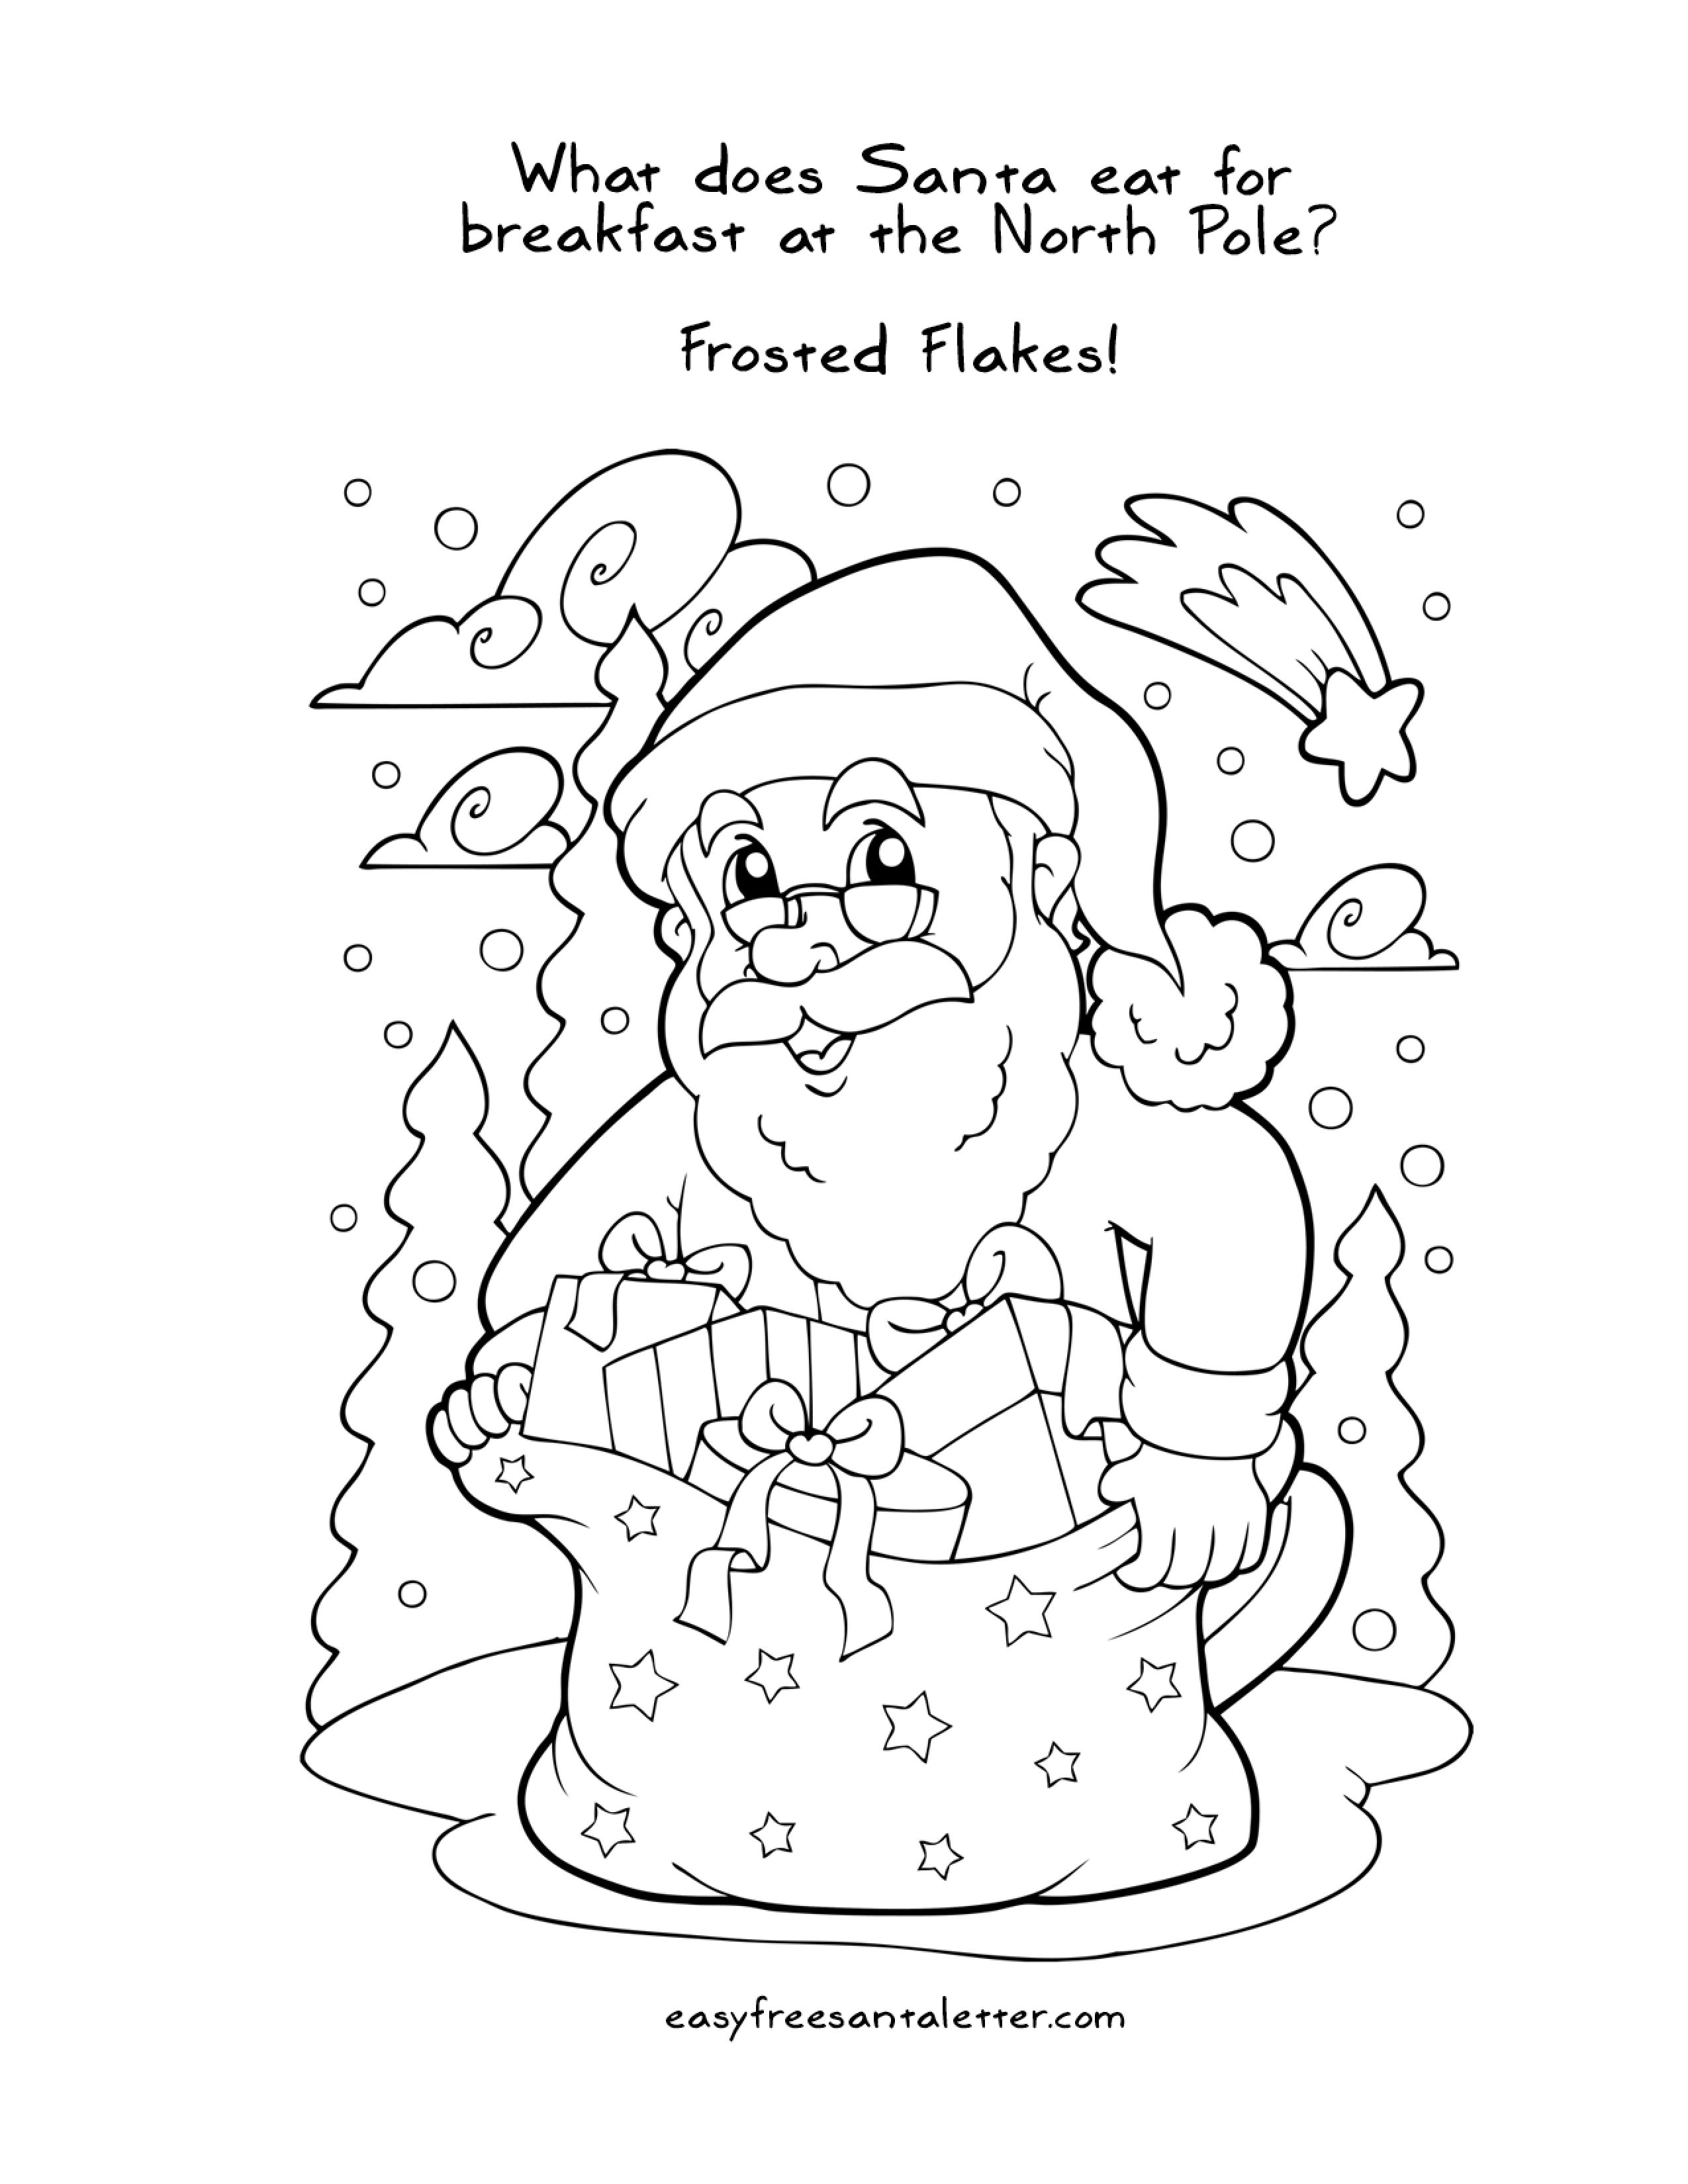 Easy Free Letter From Santa Magical Package Printable Christmas Coloring Pages Santa Coloring Pages Christmas Coloring Pages